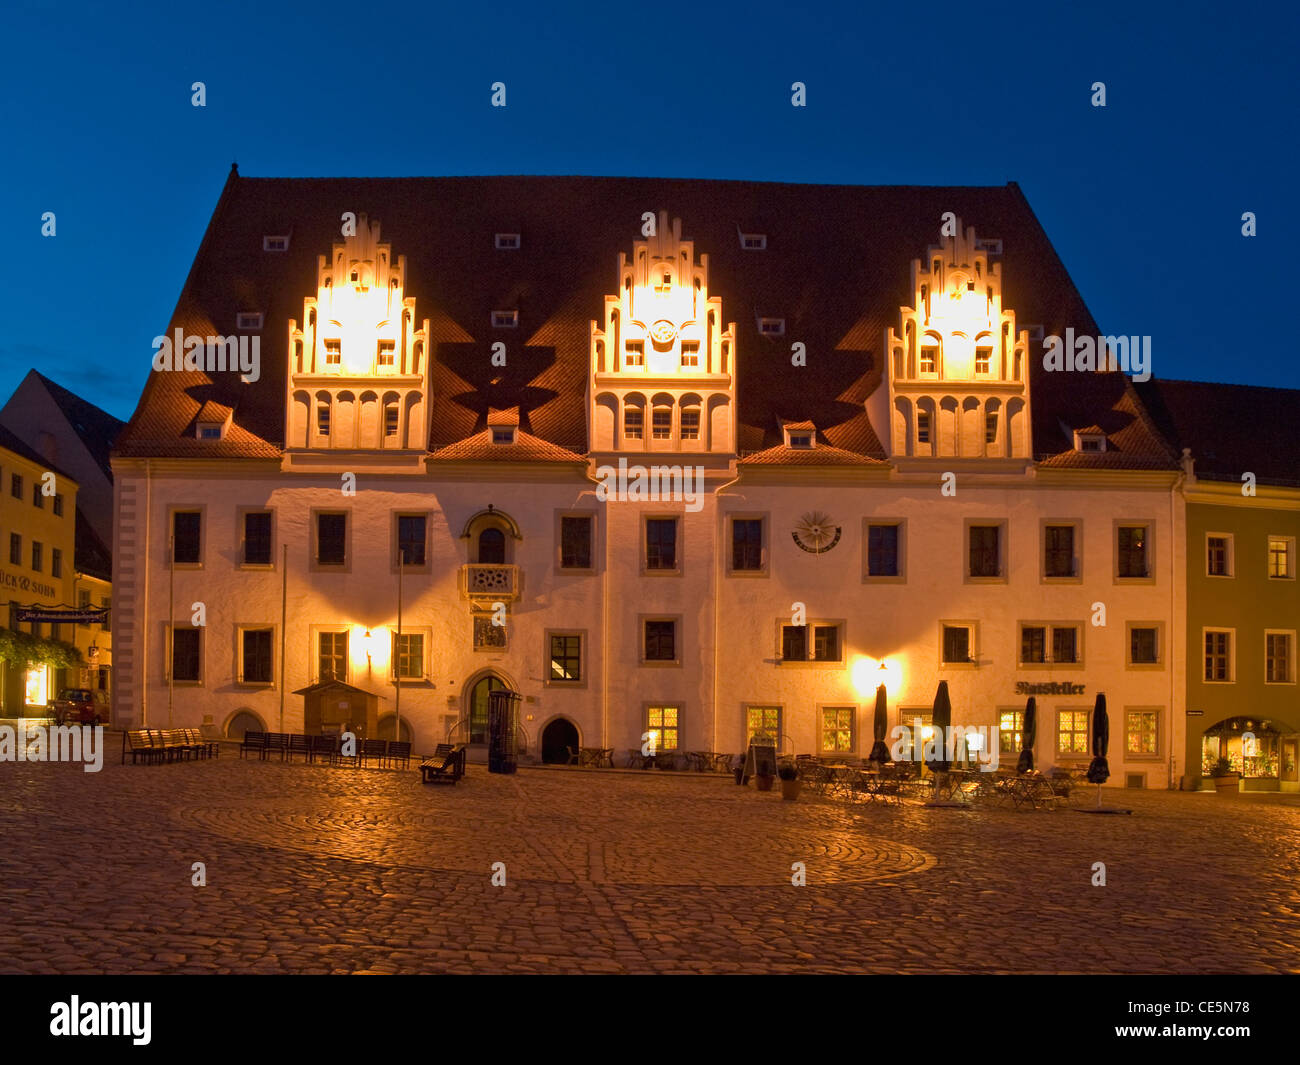 late Gothic styled Meissen guildhall, Meissen, Saxony, Germany, Europe - Stock Image